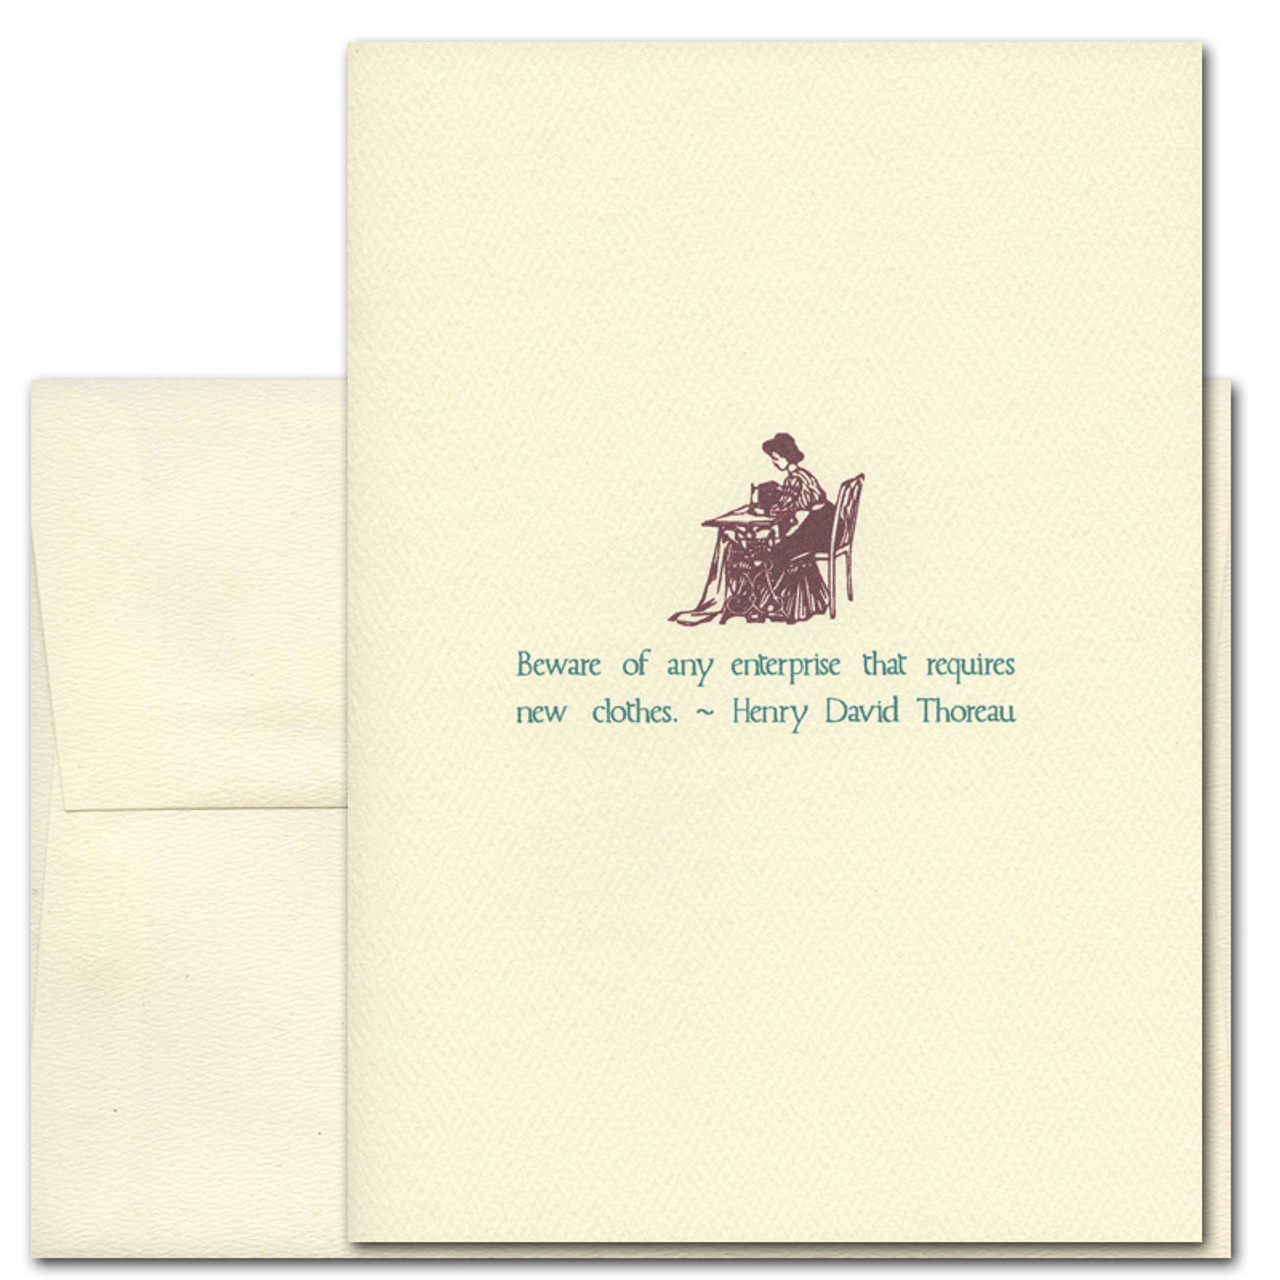 """Quotation Card """"New Clothes: Thoreau"""" Cover shows old fashioned illustration of a woman sewing on a sewing machine with a quote from Henry David Thoreau that reads: """"Beware of any enterprise that requires new clothes."""""""